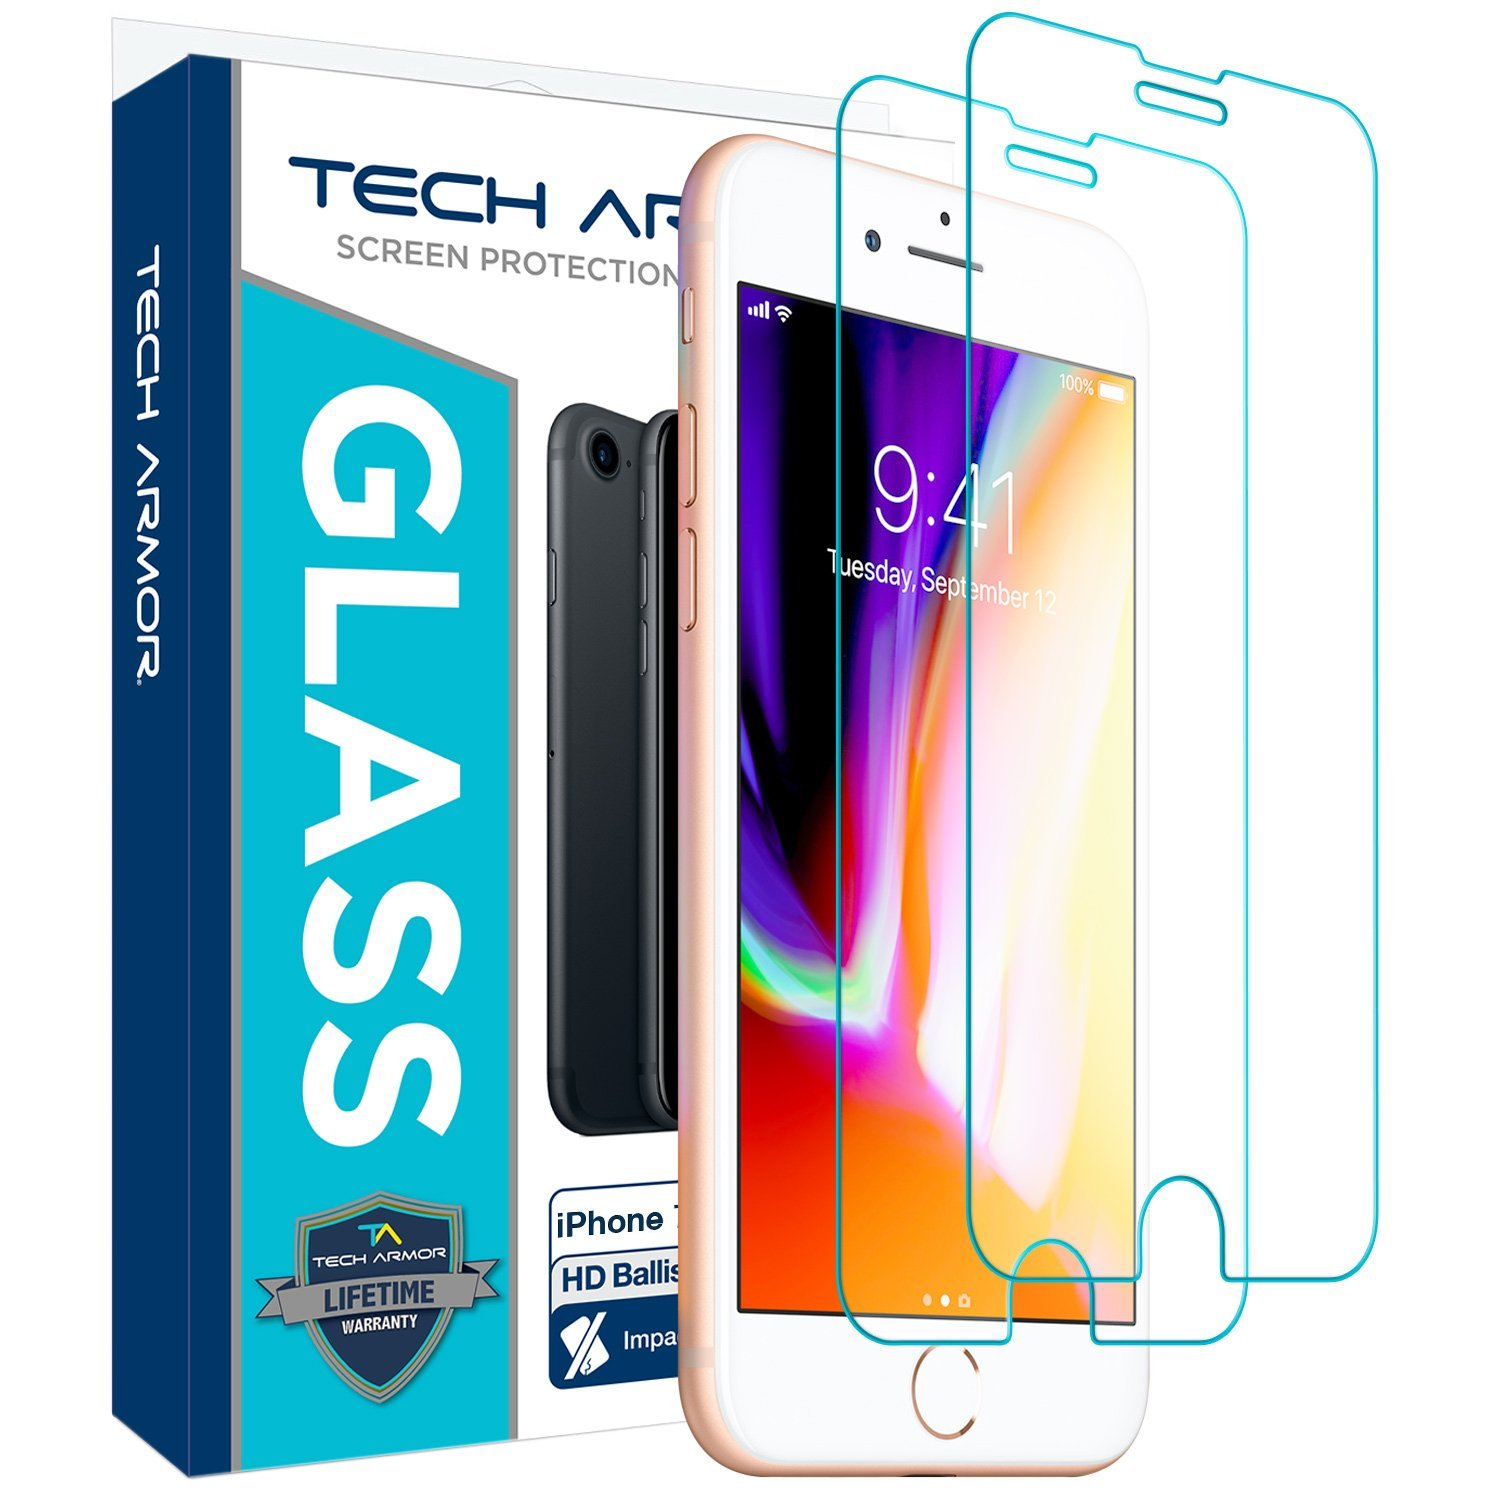 Tech Armor Apple iPhone 6/6S, iPhone 7, iPhone 8 (4.7') Ballistic Glass Screen Protector - 99.99% Clarity and 3D Touch Accuracy [2-Pack] iPhone 8 (4.7) Ballistic Glass Screen Protector - 99.99% Clarity and 3D Touch Accuracy [2-Pack] 4326562894